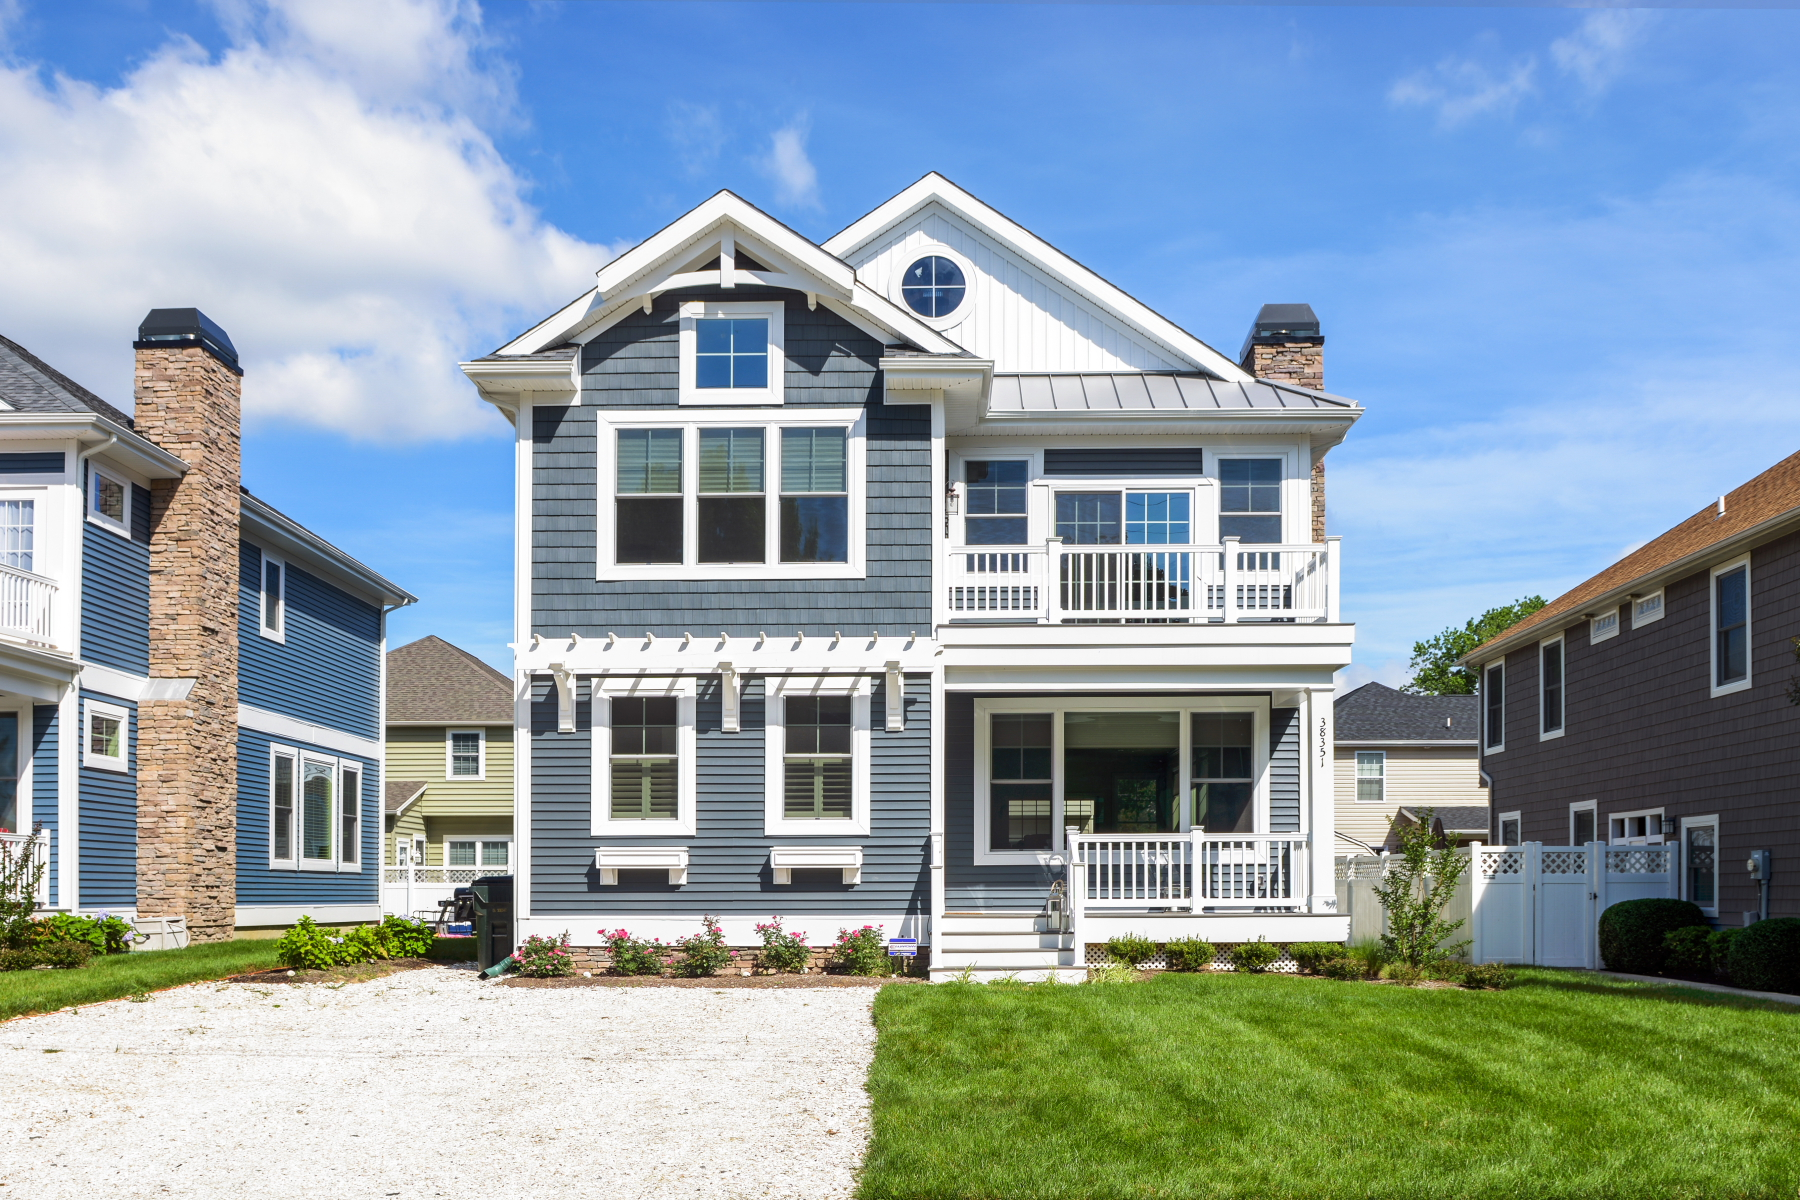 Single Family Home for Sale at 207 Munson , Rehoboth Beach, DE 19971 207 Munson Rehoboth Beach, Delaware 19971 United States